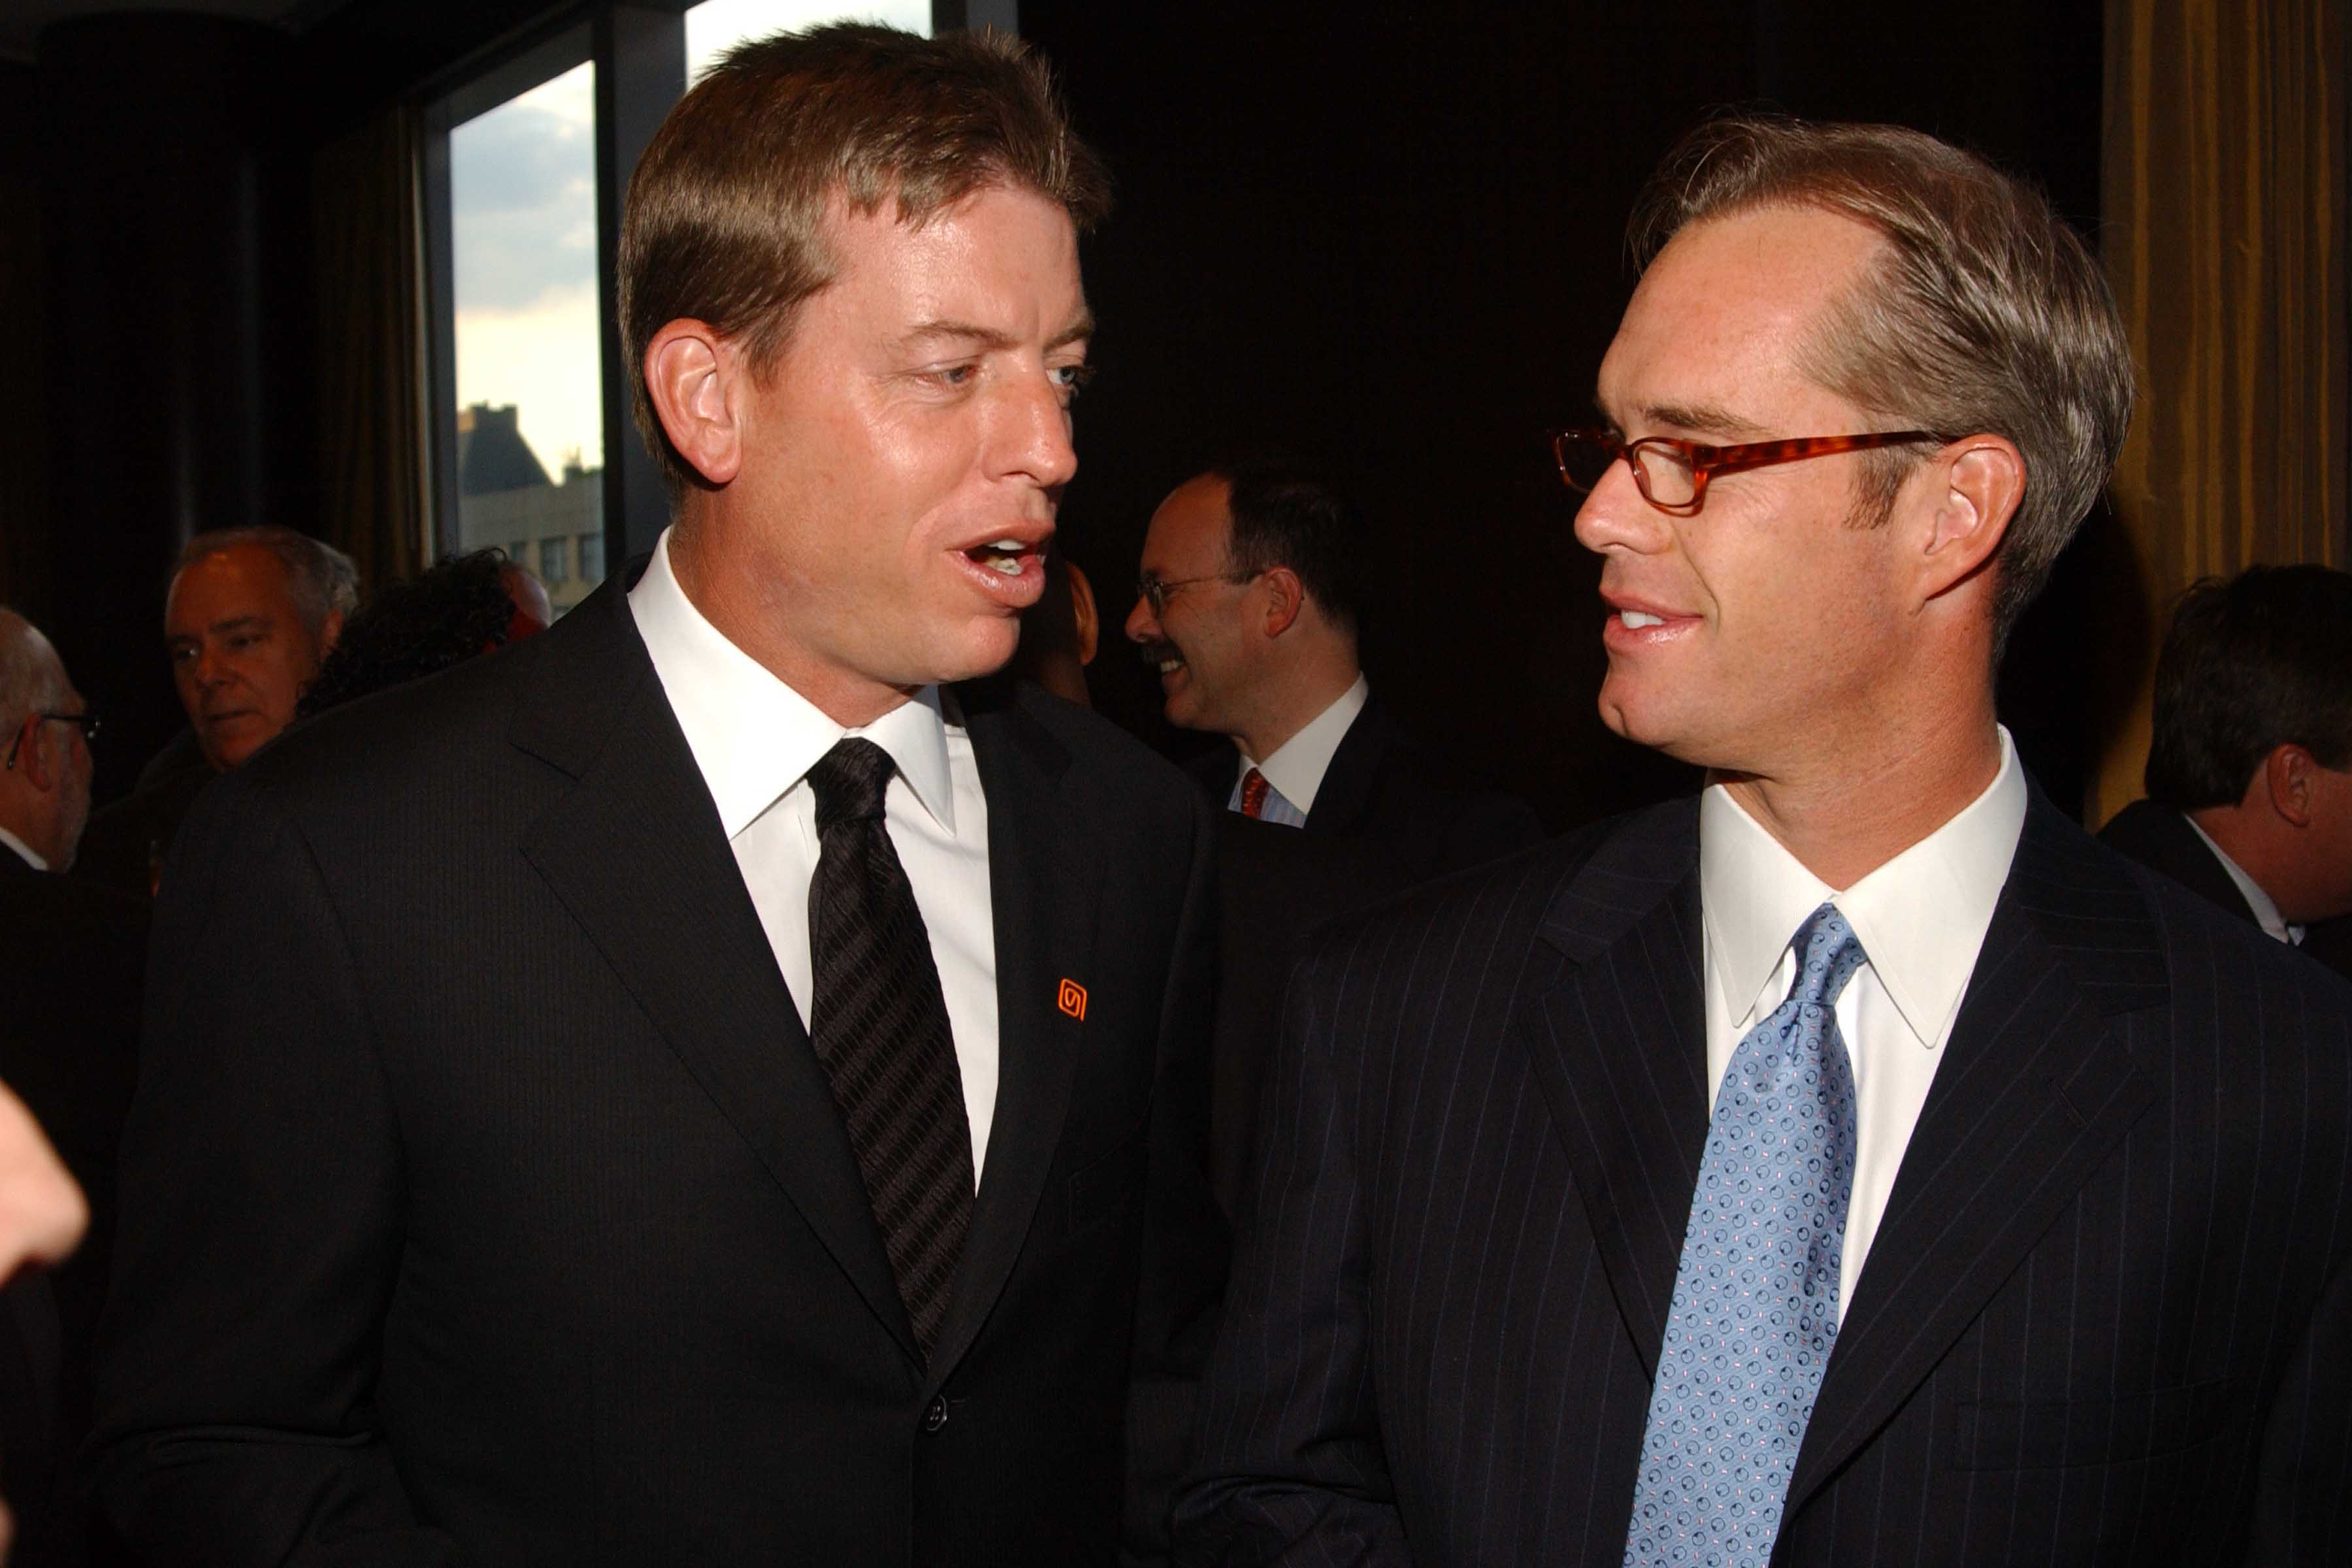 Fox announcers Joe Buck and Troy Aikman at an event in 2005.